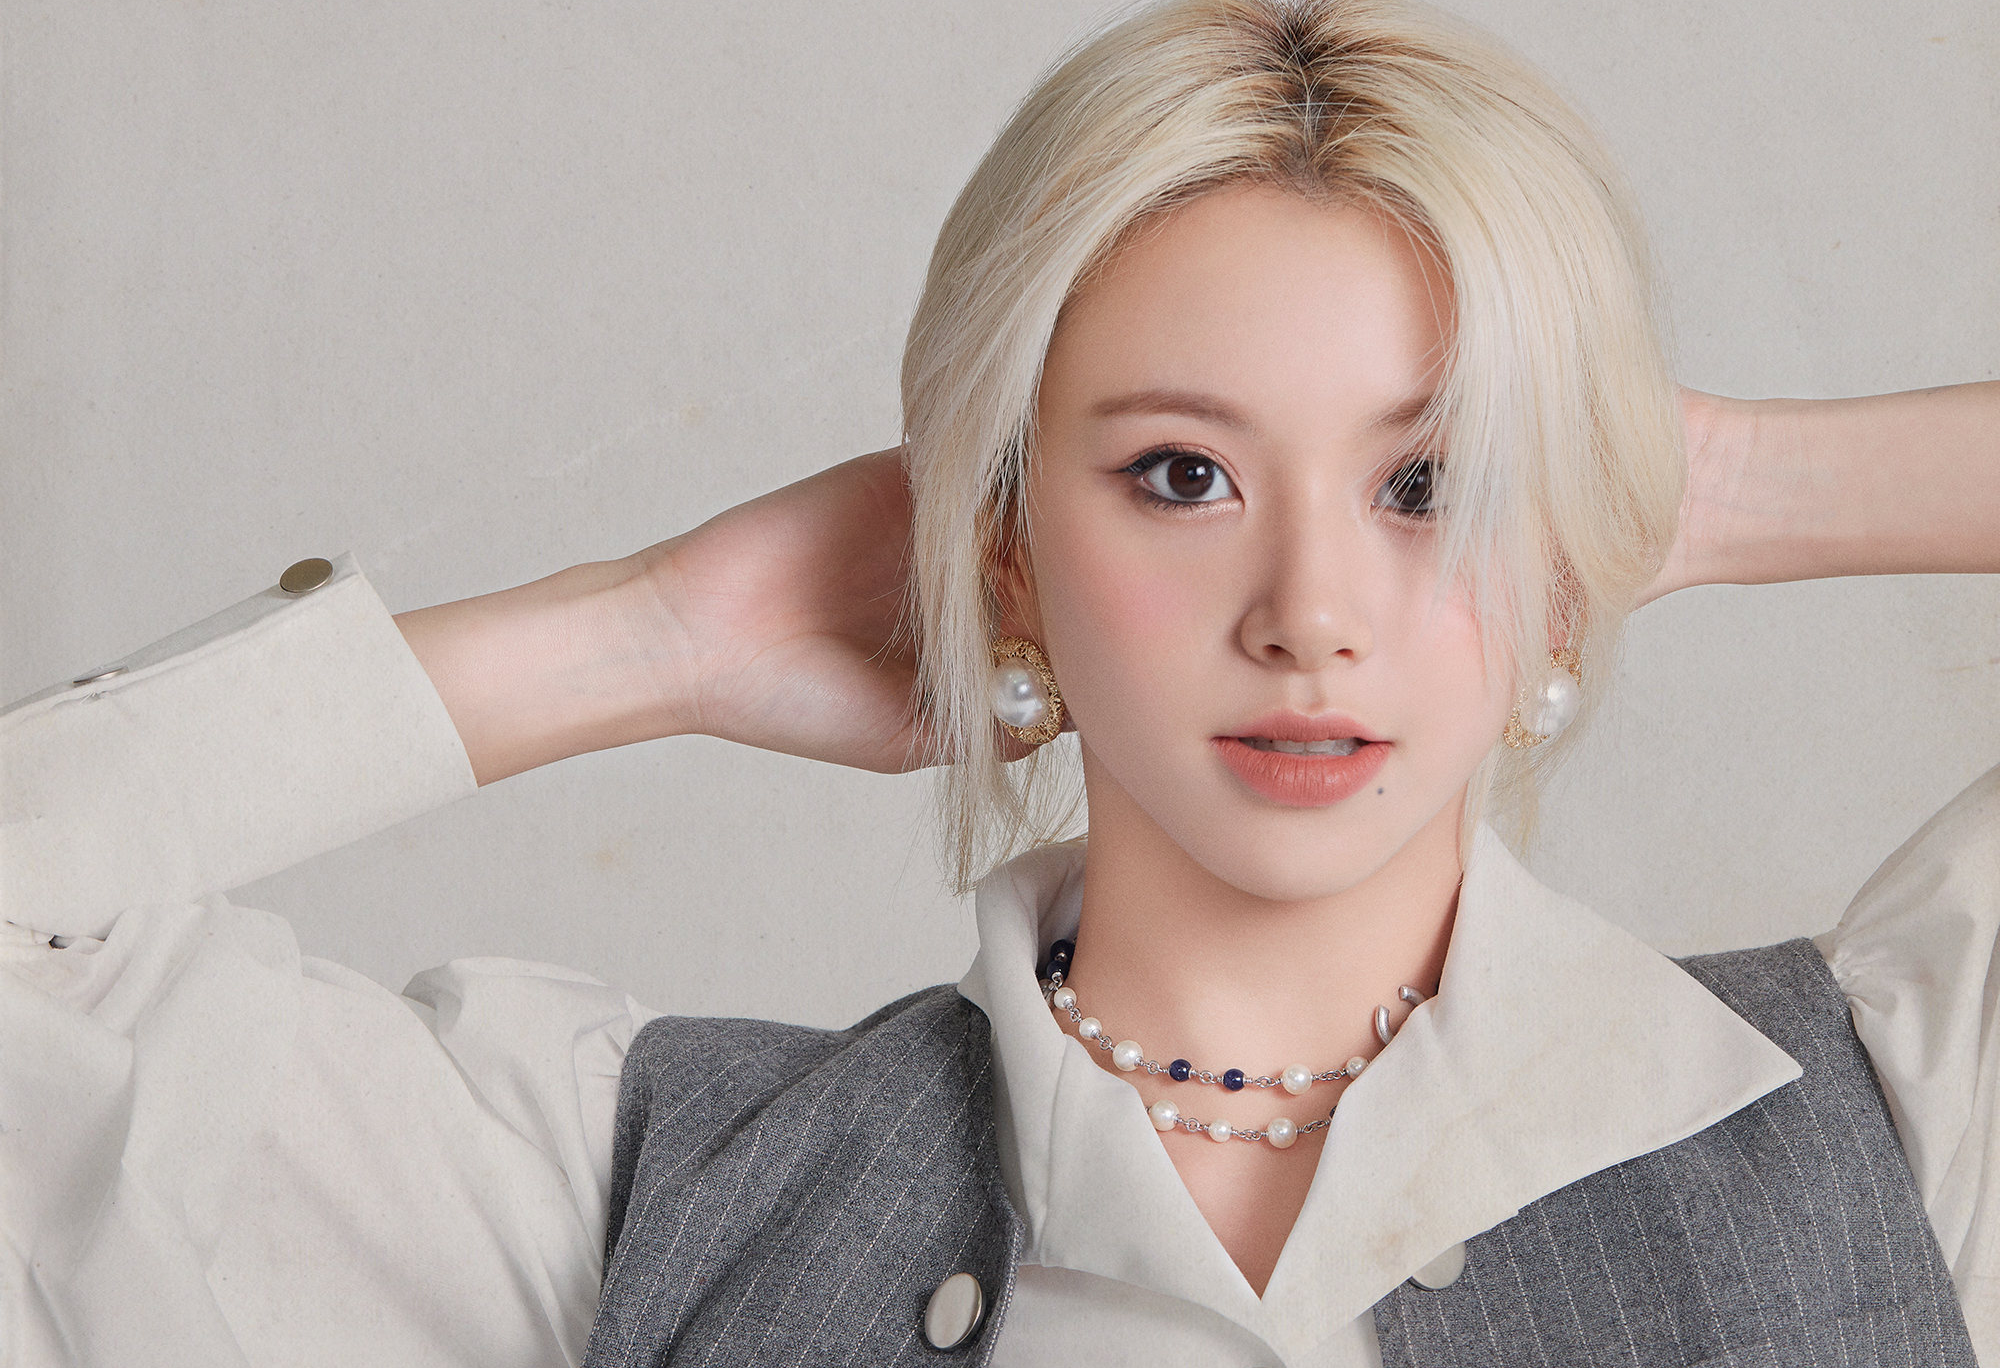 twice chaeyoung dating tattoo artist